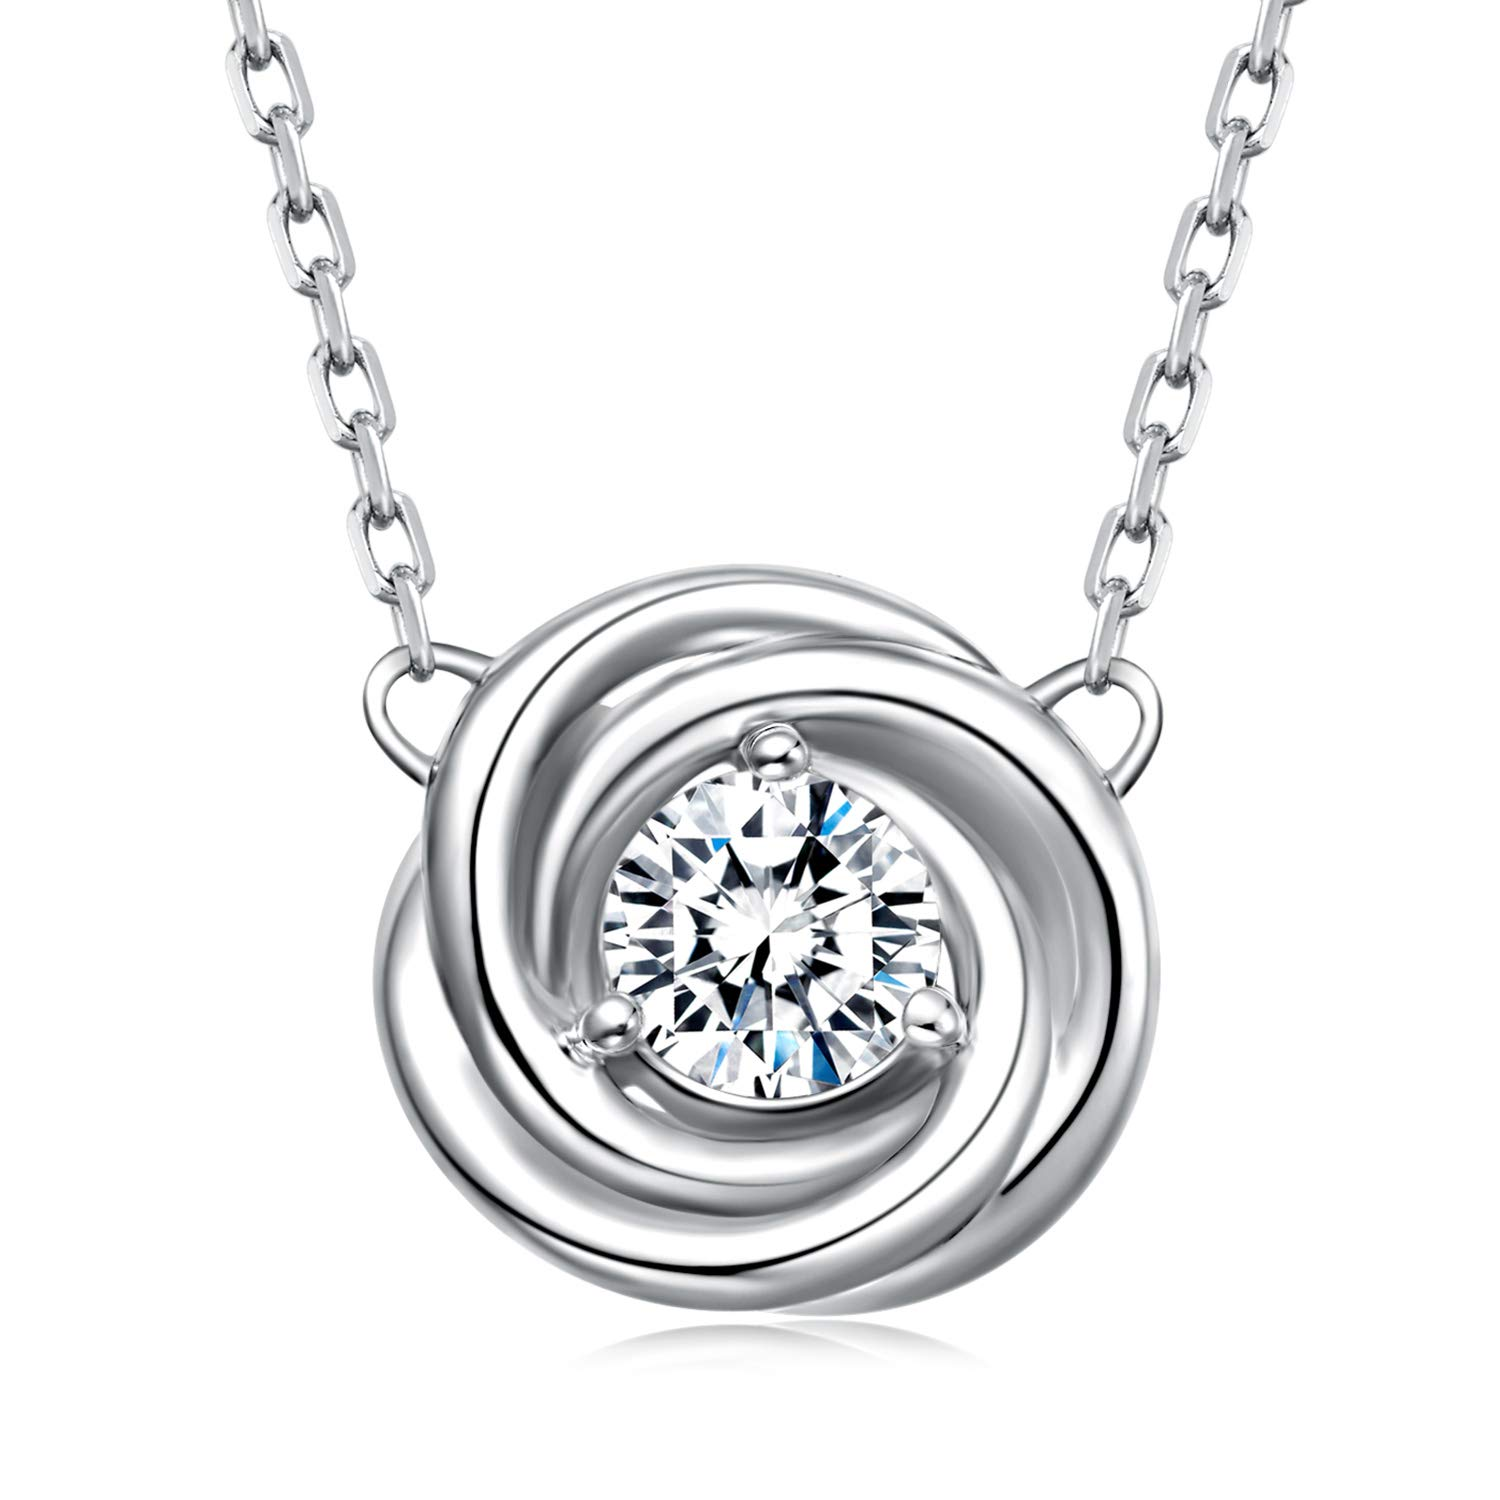 BlingGem Algerian Love Knot Pendant Necklace in 925 Sterling Silver Plated White Gold CZ Pendant Necklace for Women Ideal Gift 18""